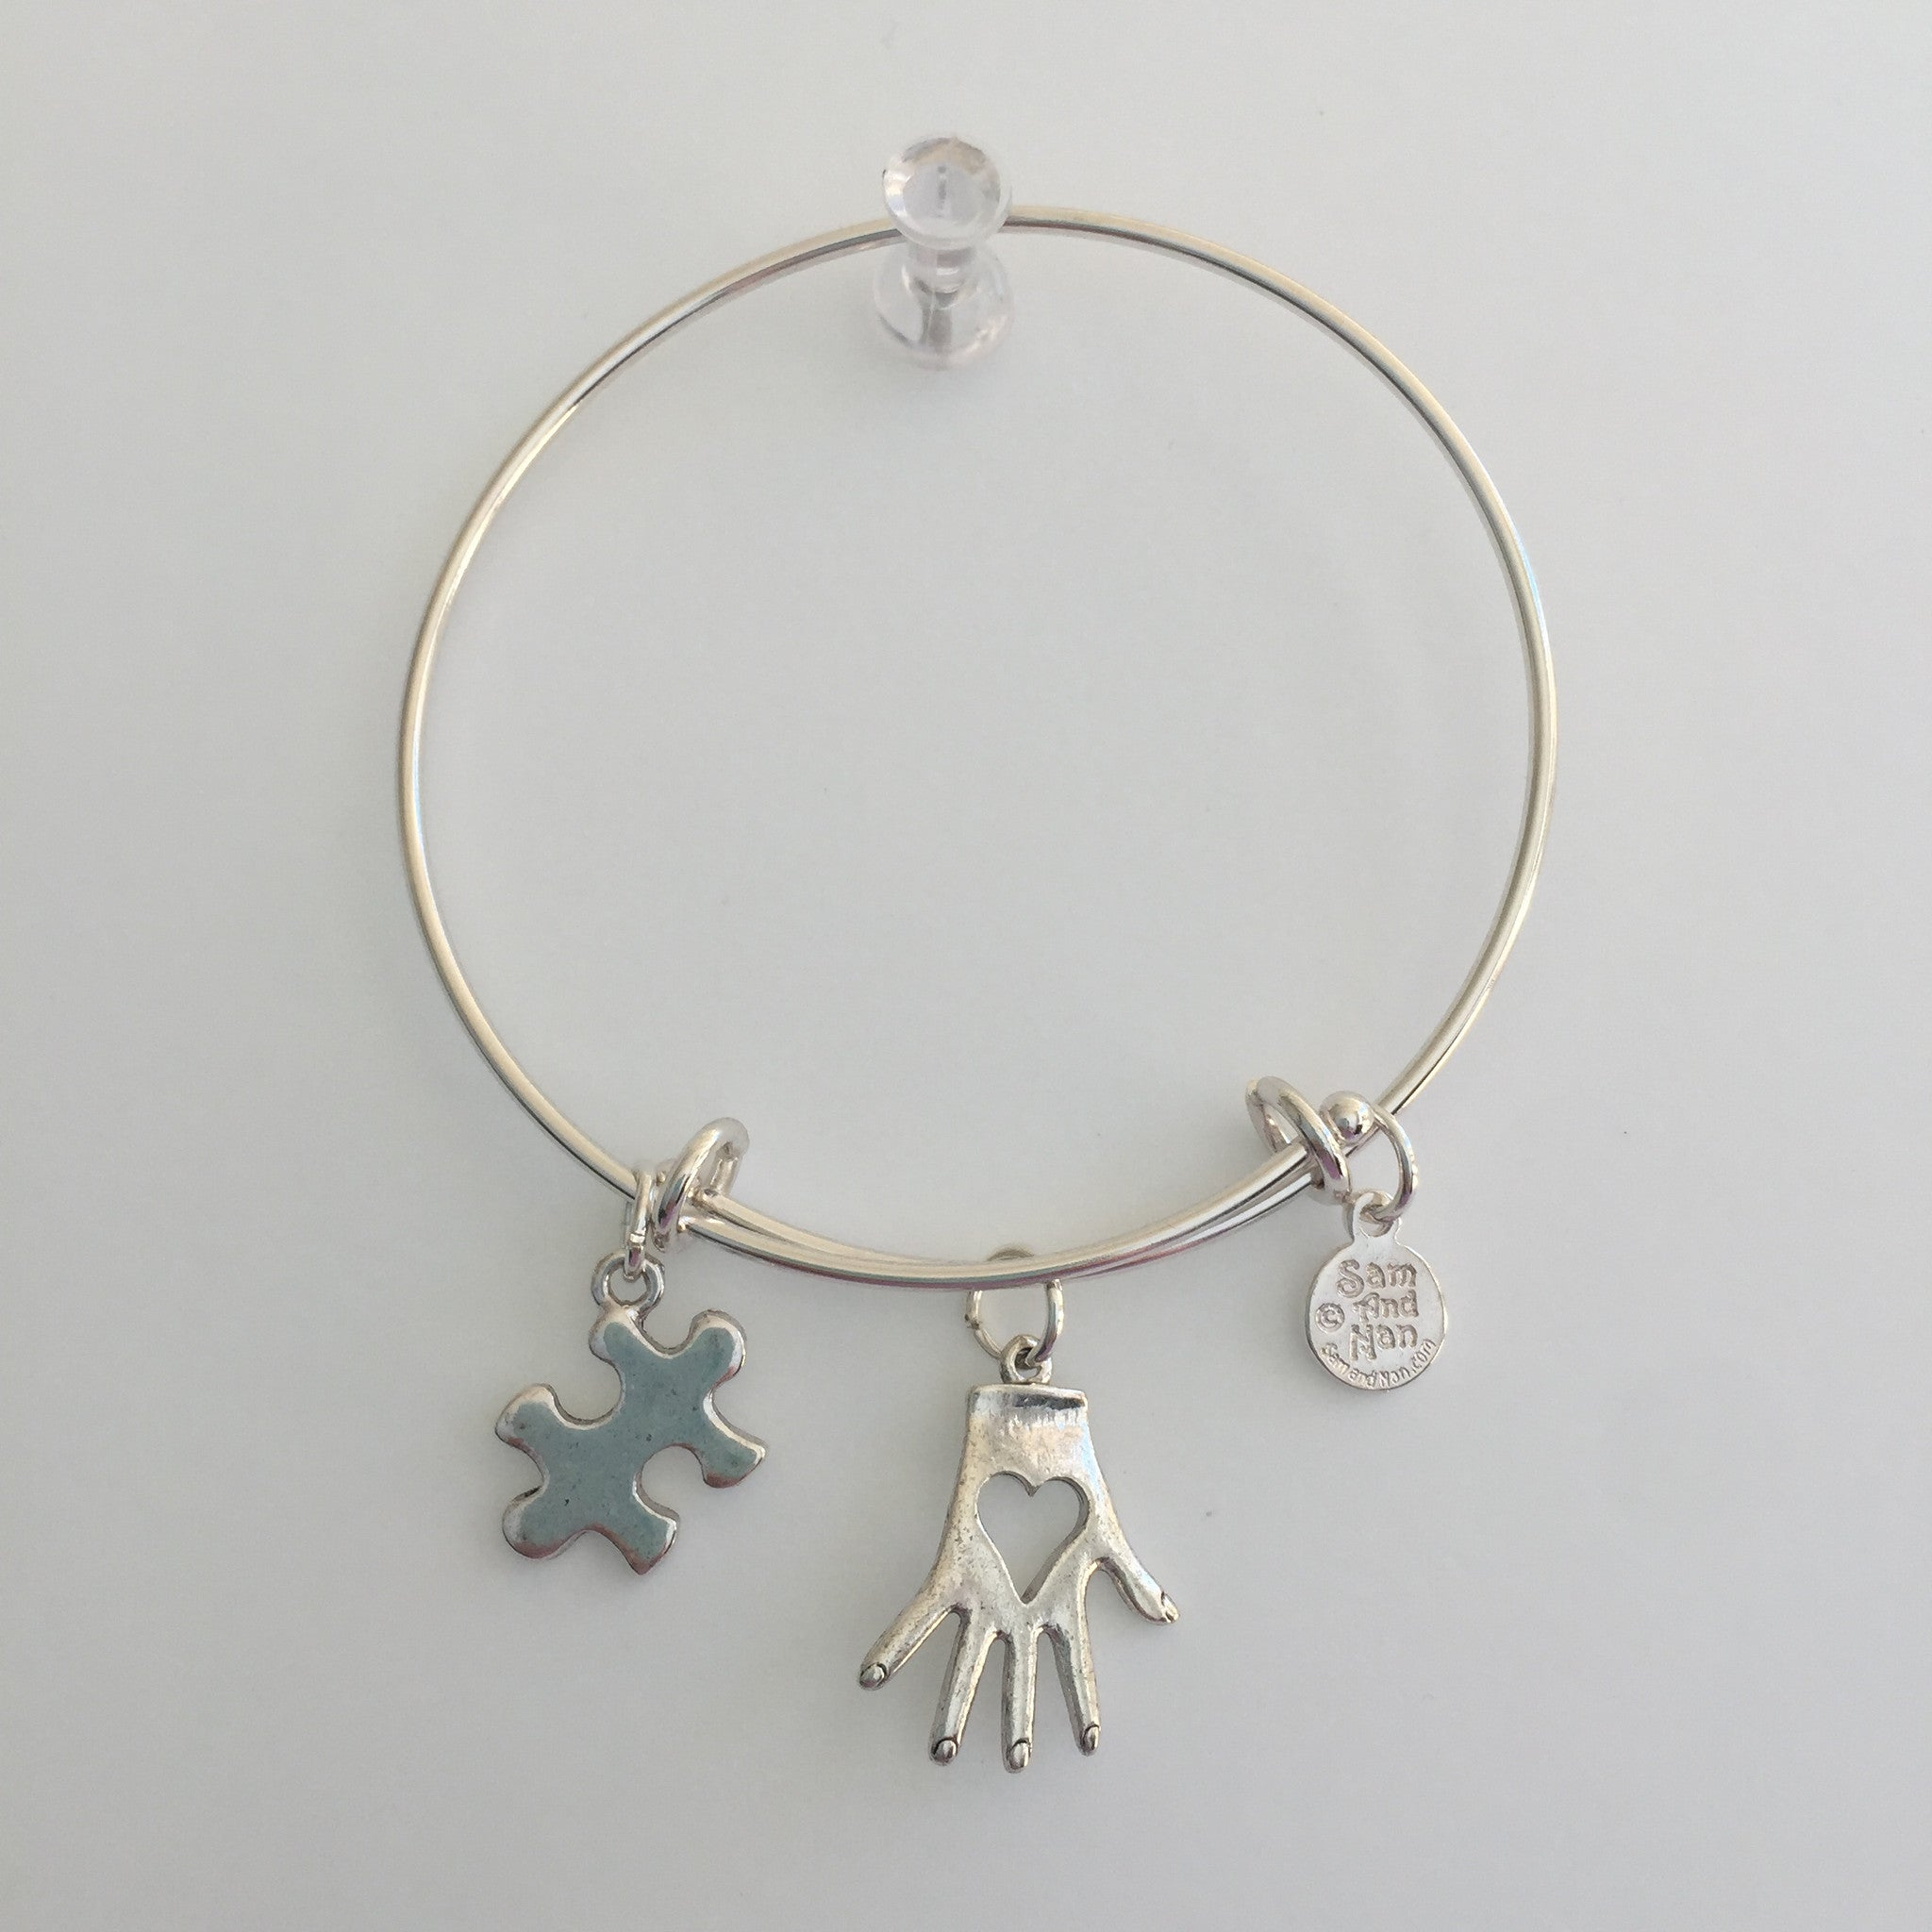 Autism Heart and Hand Bangle Bracelet - SamandNan